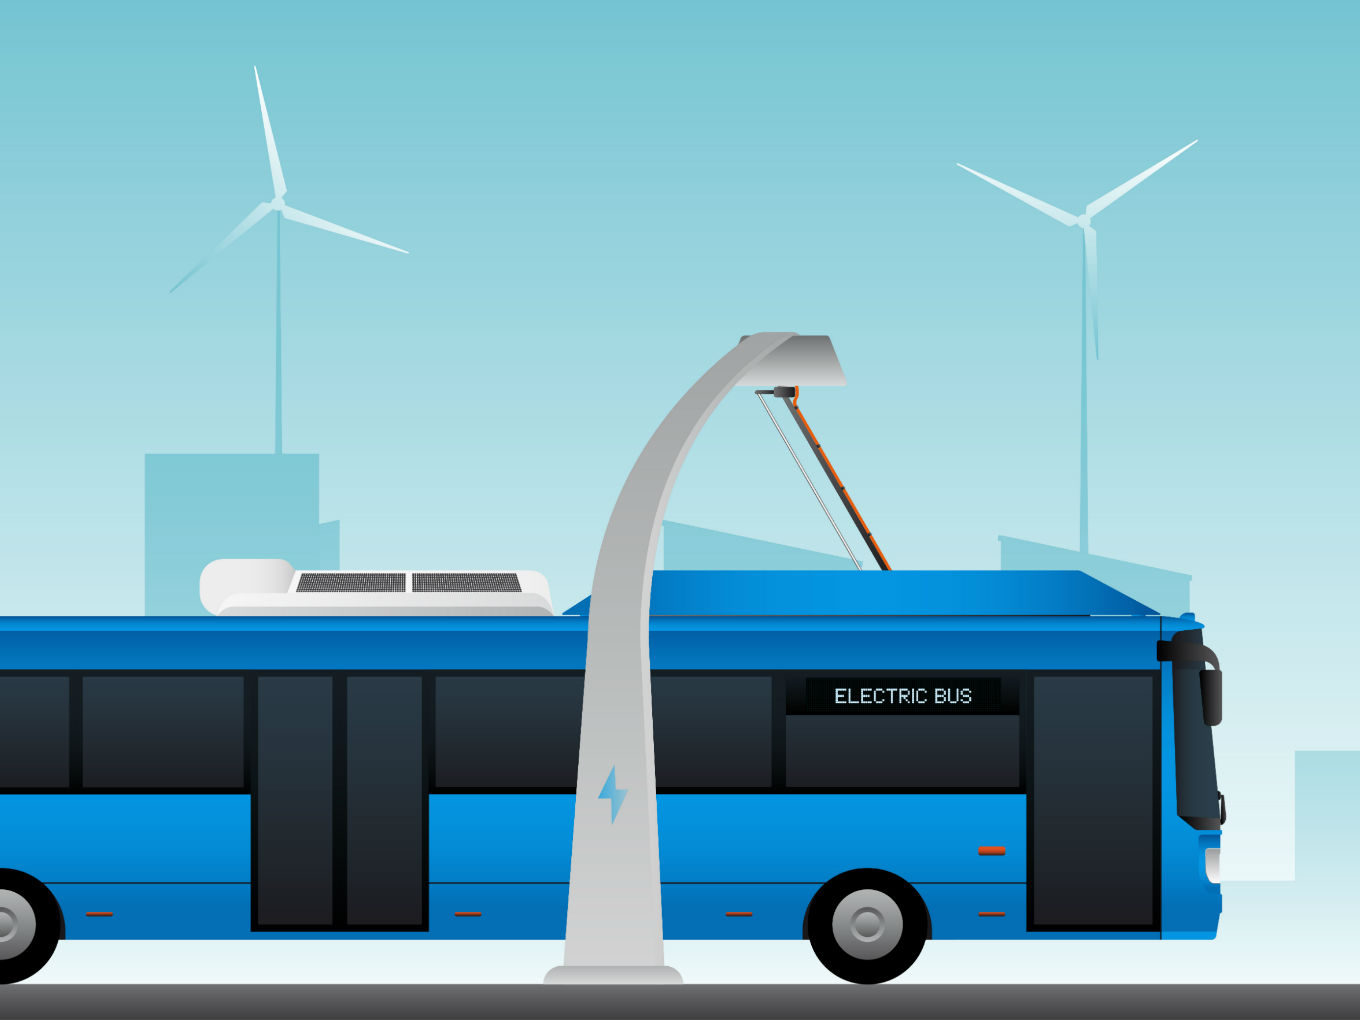 Andhra Pradesh Govt Issues Tender For 350 AC Electric Buses